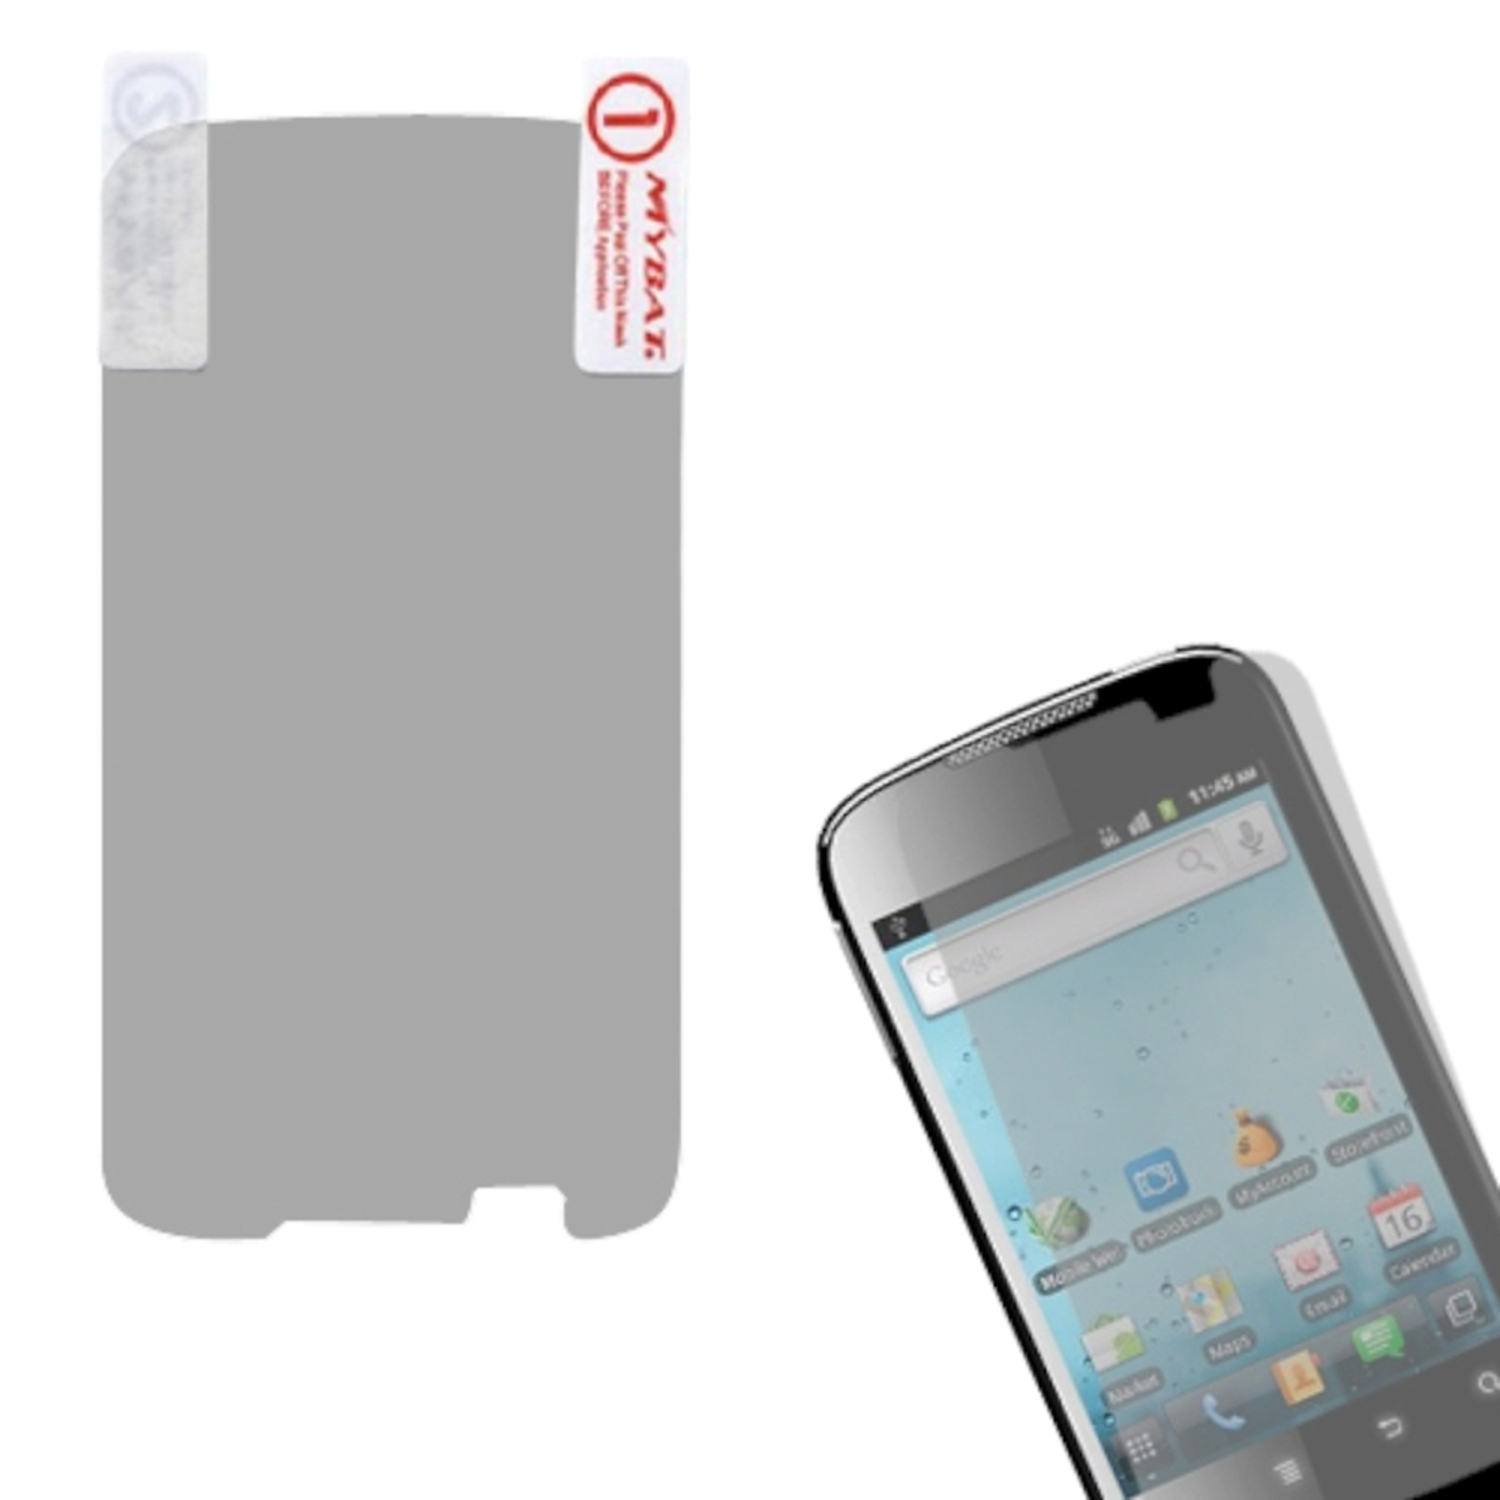 Insten Anti-grease LCD Screen Protector/Clear for HUAWEI: M865 (Ascend II), U8651T (Prism), U8651S (Summit)